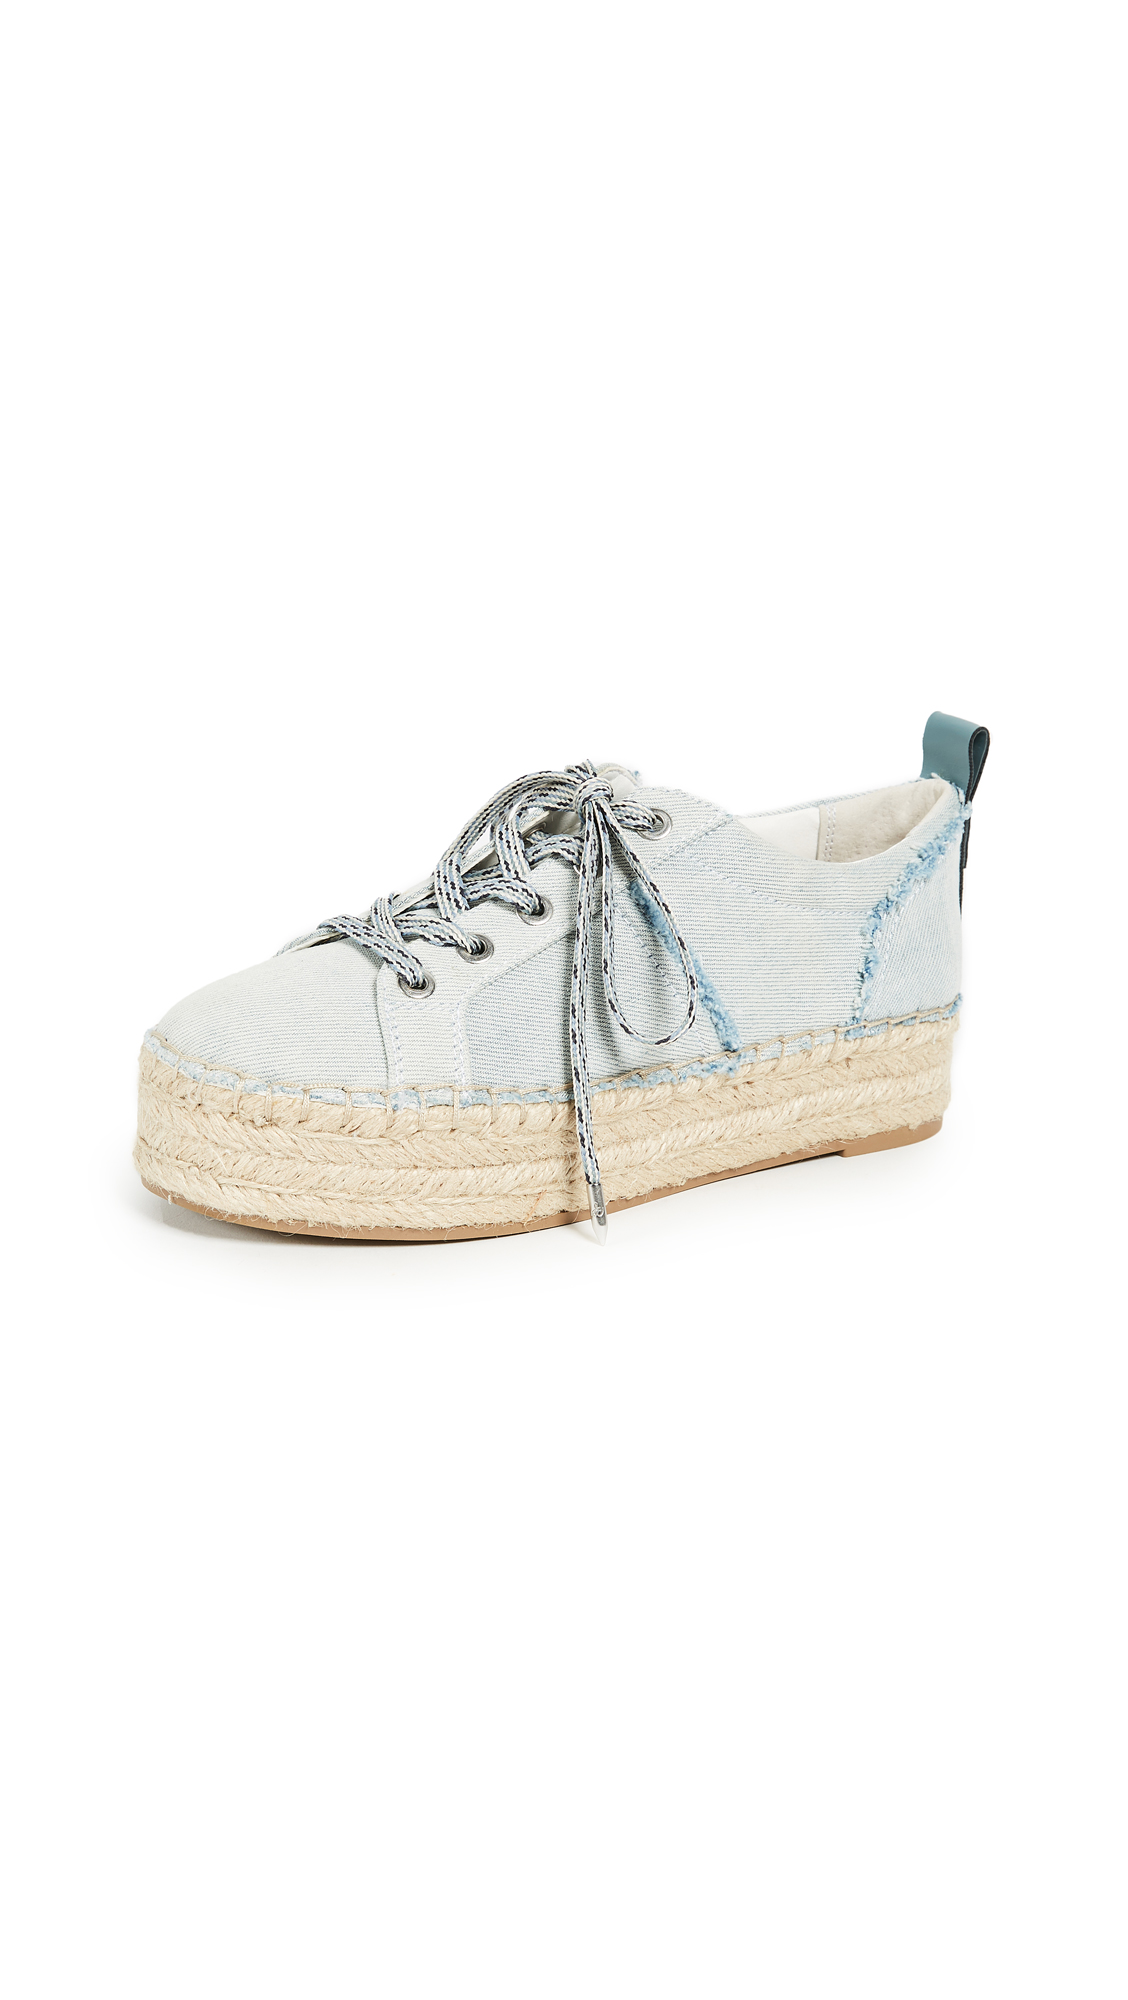 Sam Edelman Carleigh Platform Espadrille Sneakers - Light Blue